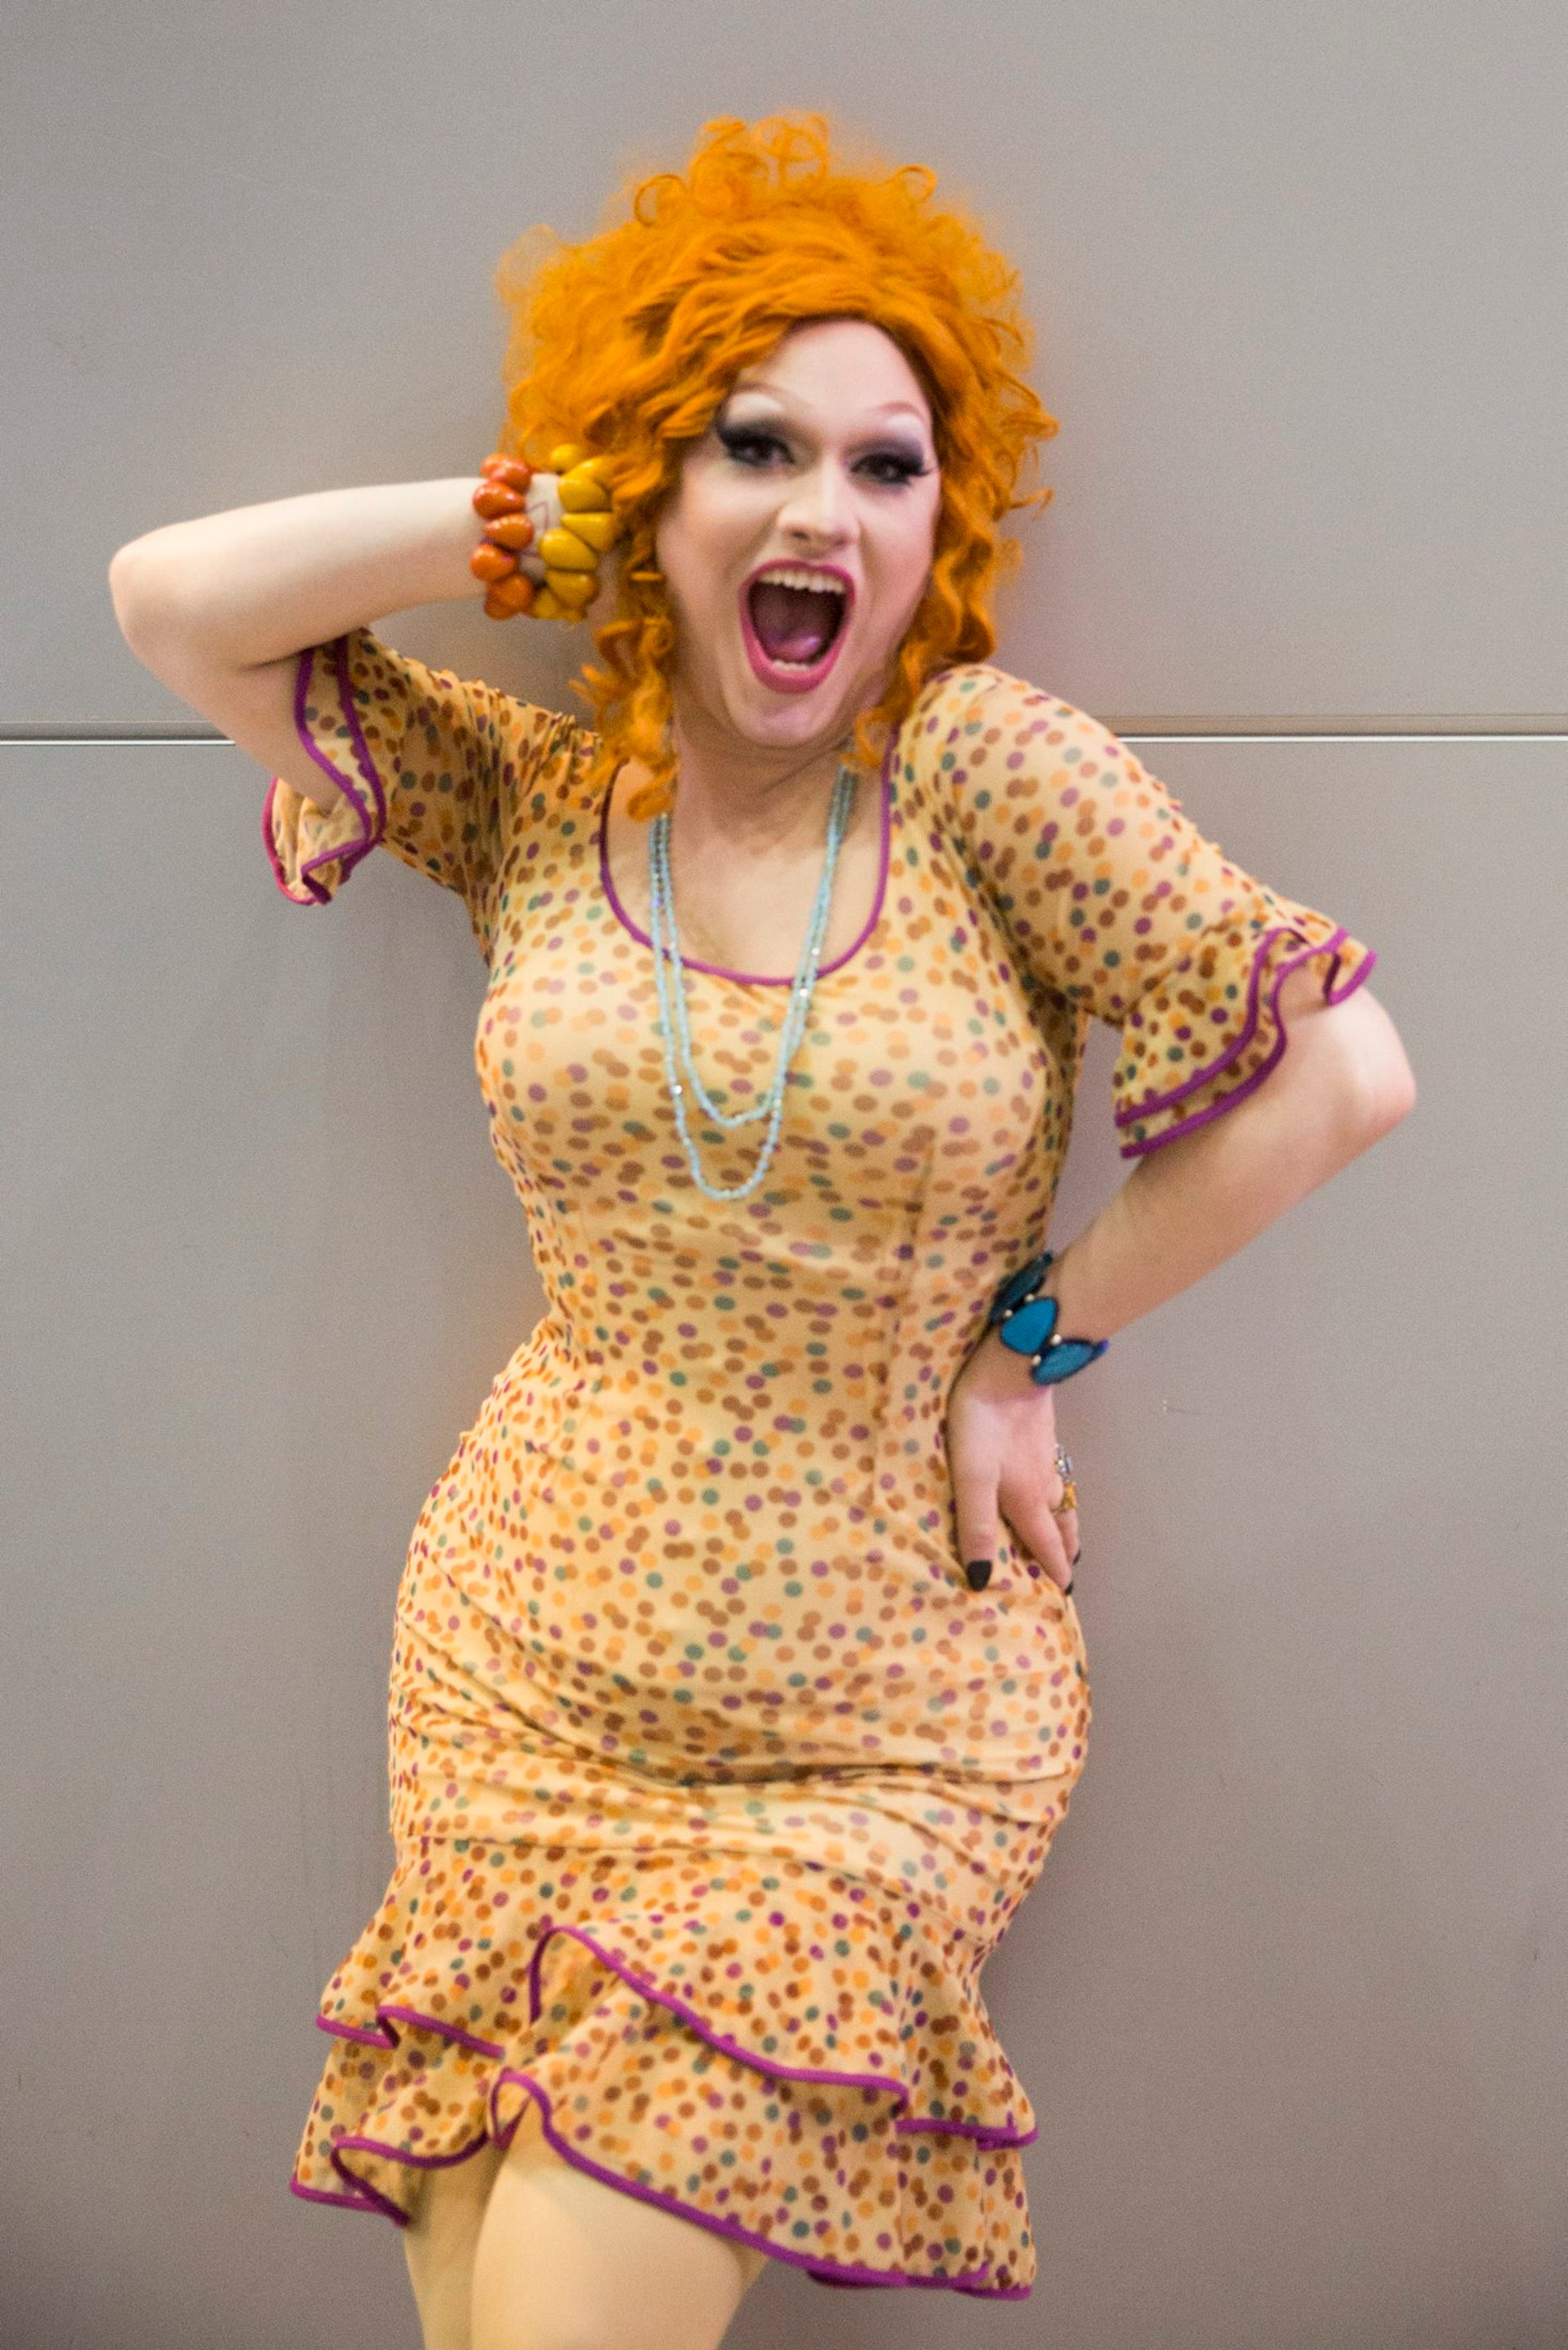 Jinkx Monsoon. 'You create a persona that is not only you in a costume, but it's a whole separate person.'